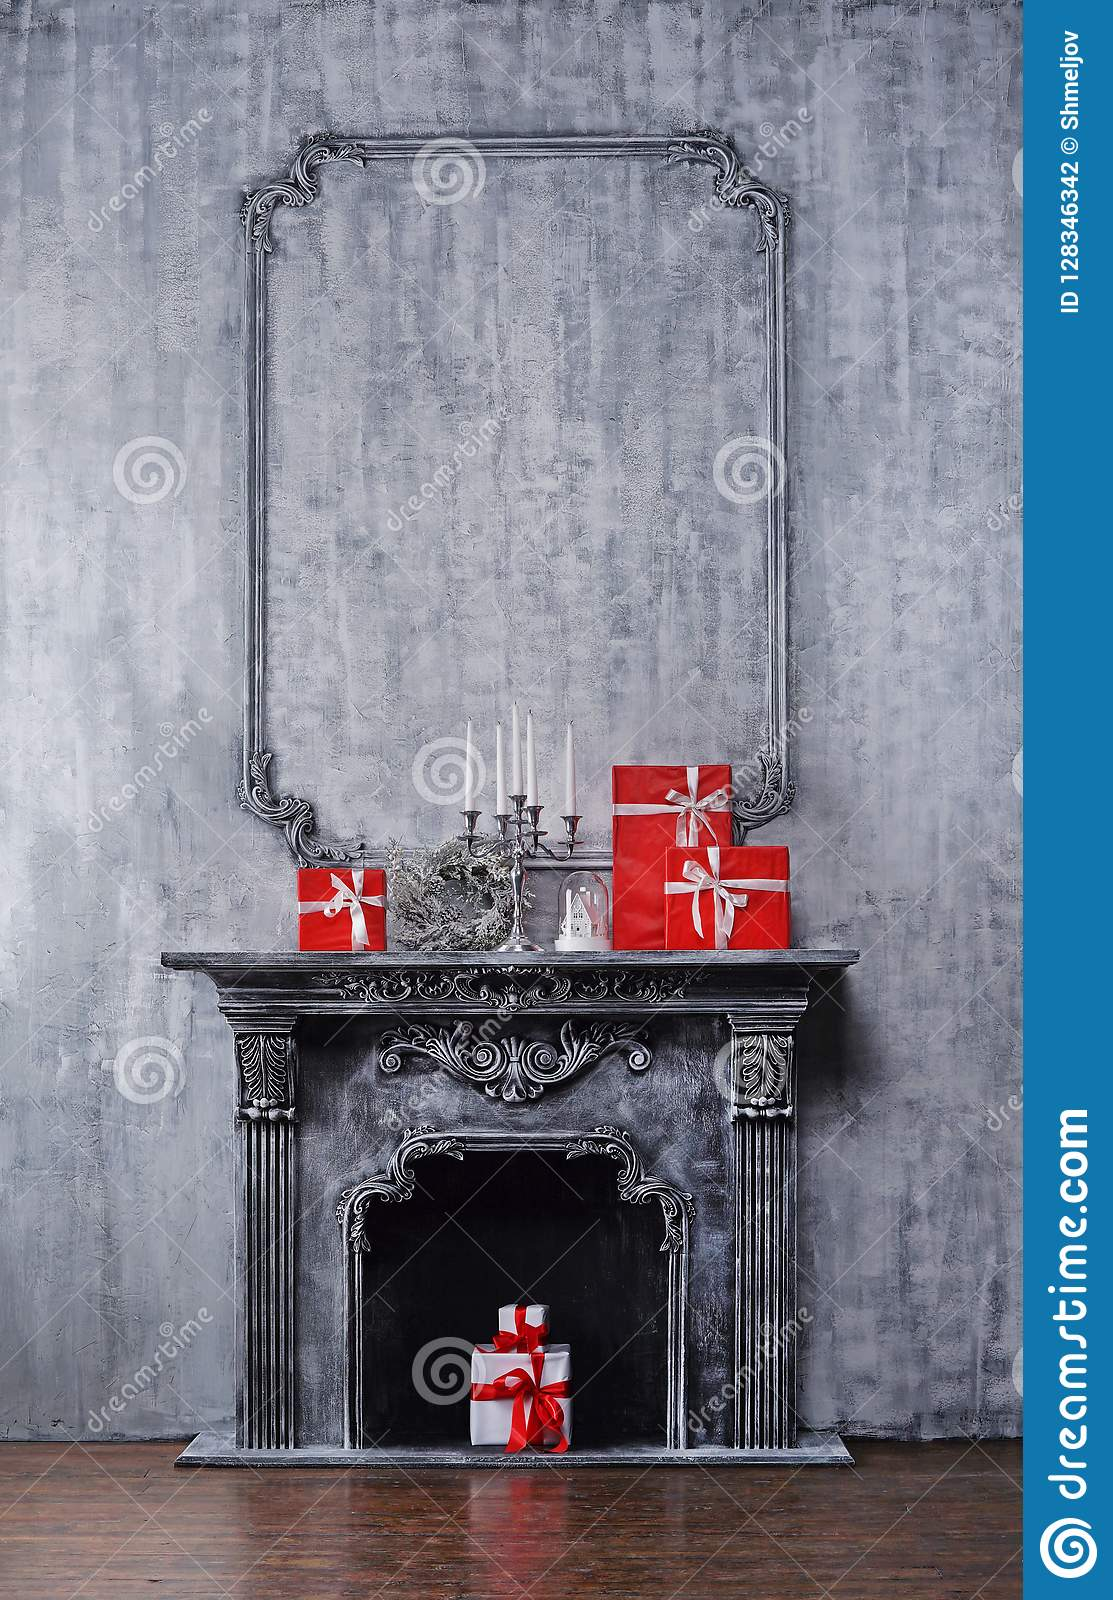 Christmas background concept. Ancient fireplace with a candlestick and gift boxes.